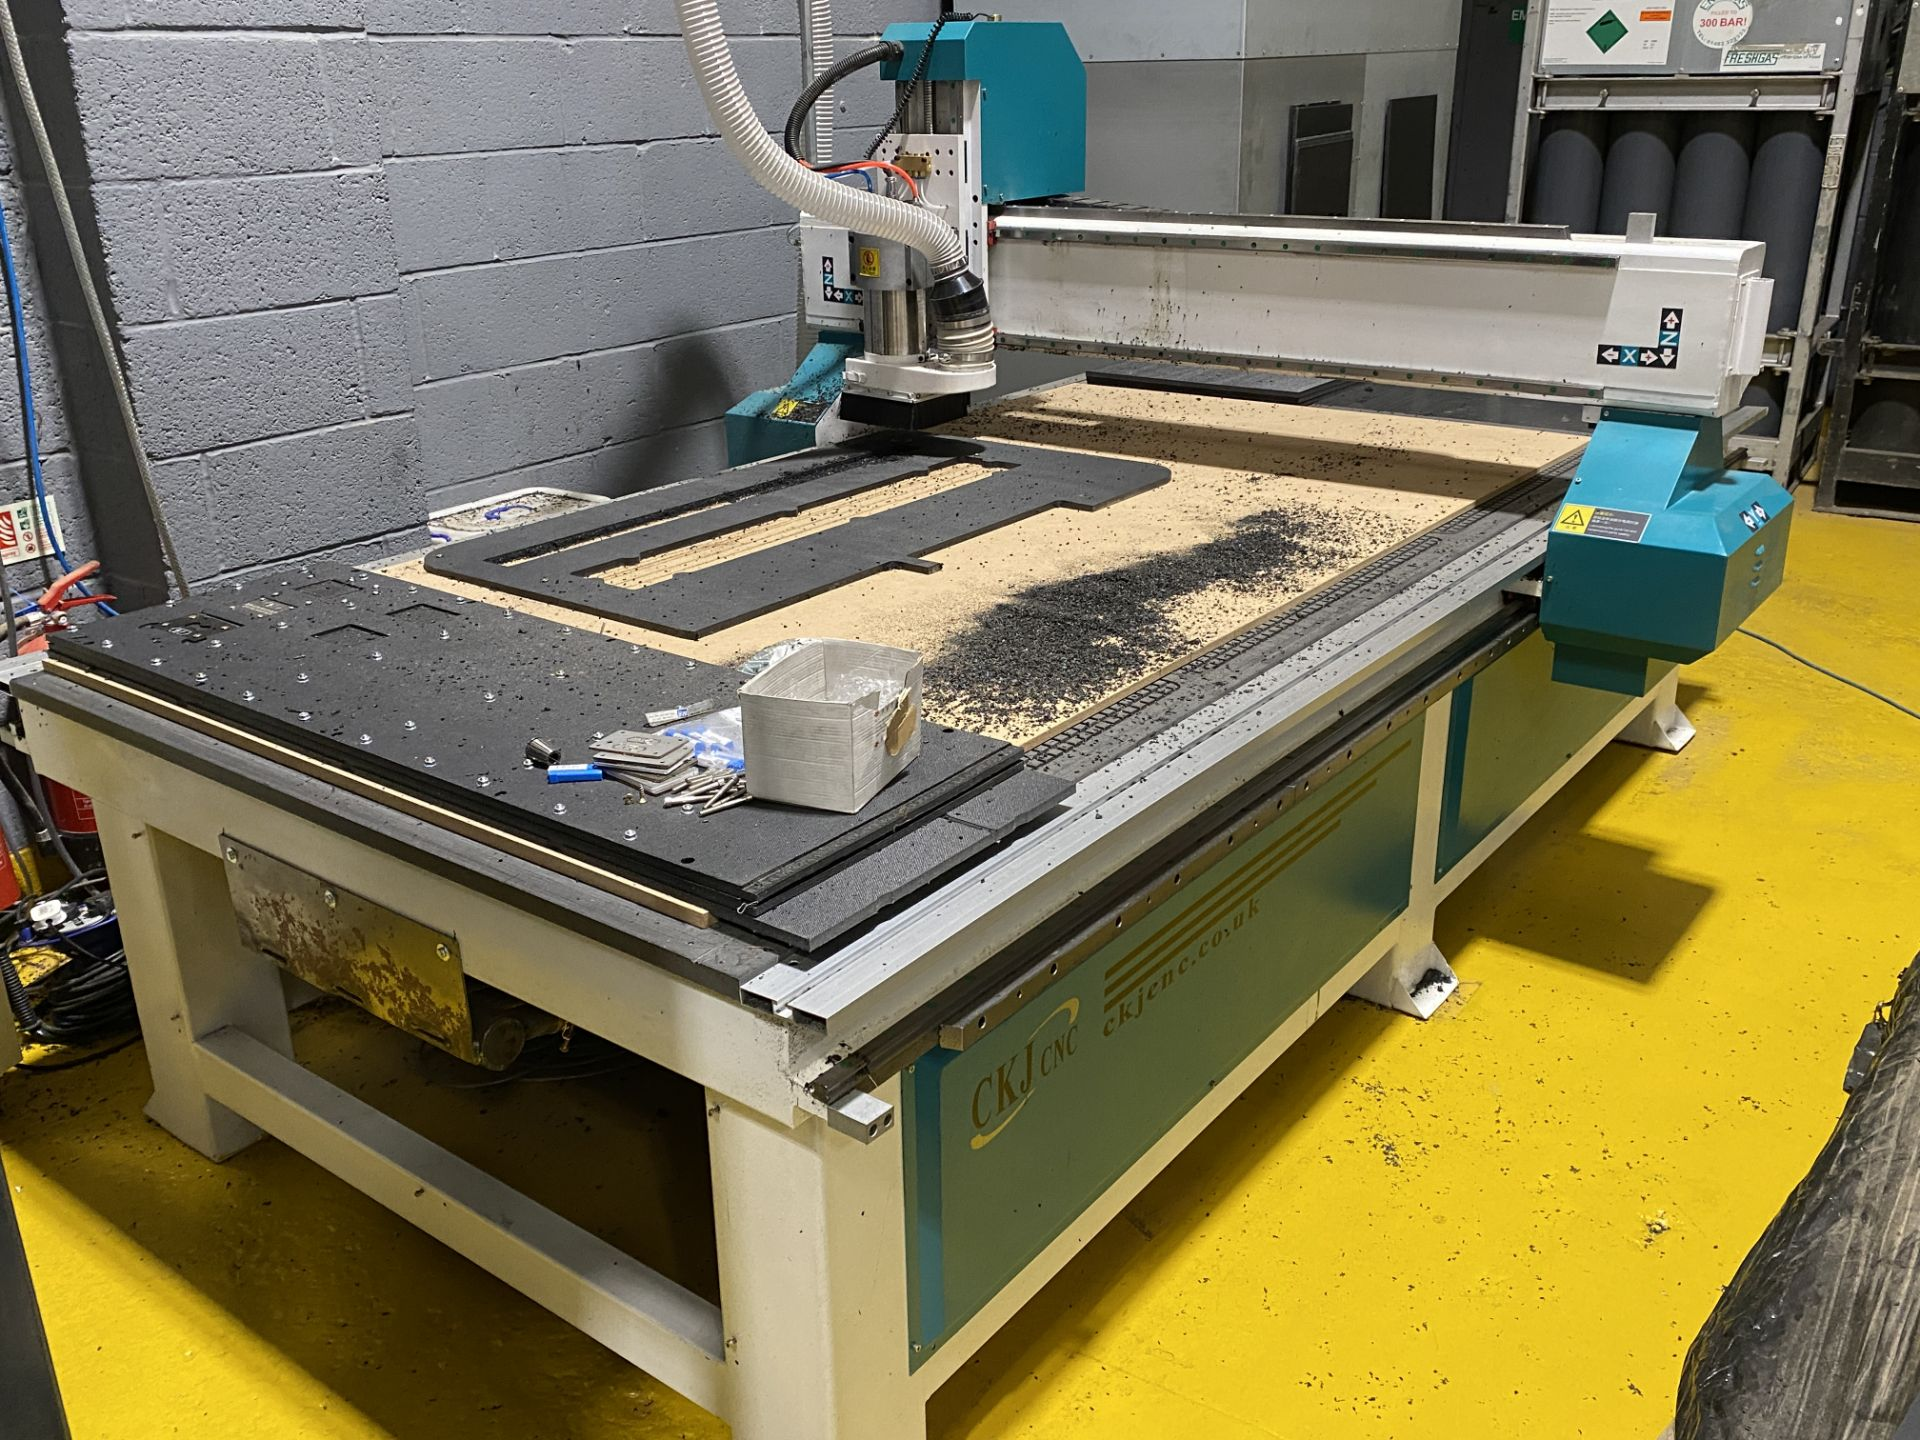 CKJ Model 1325, CNC Router, Working Area 1300mm x 1500mm - Image 4 of 8